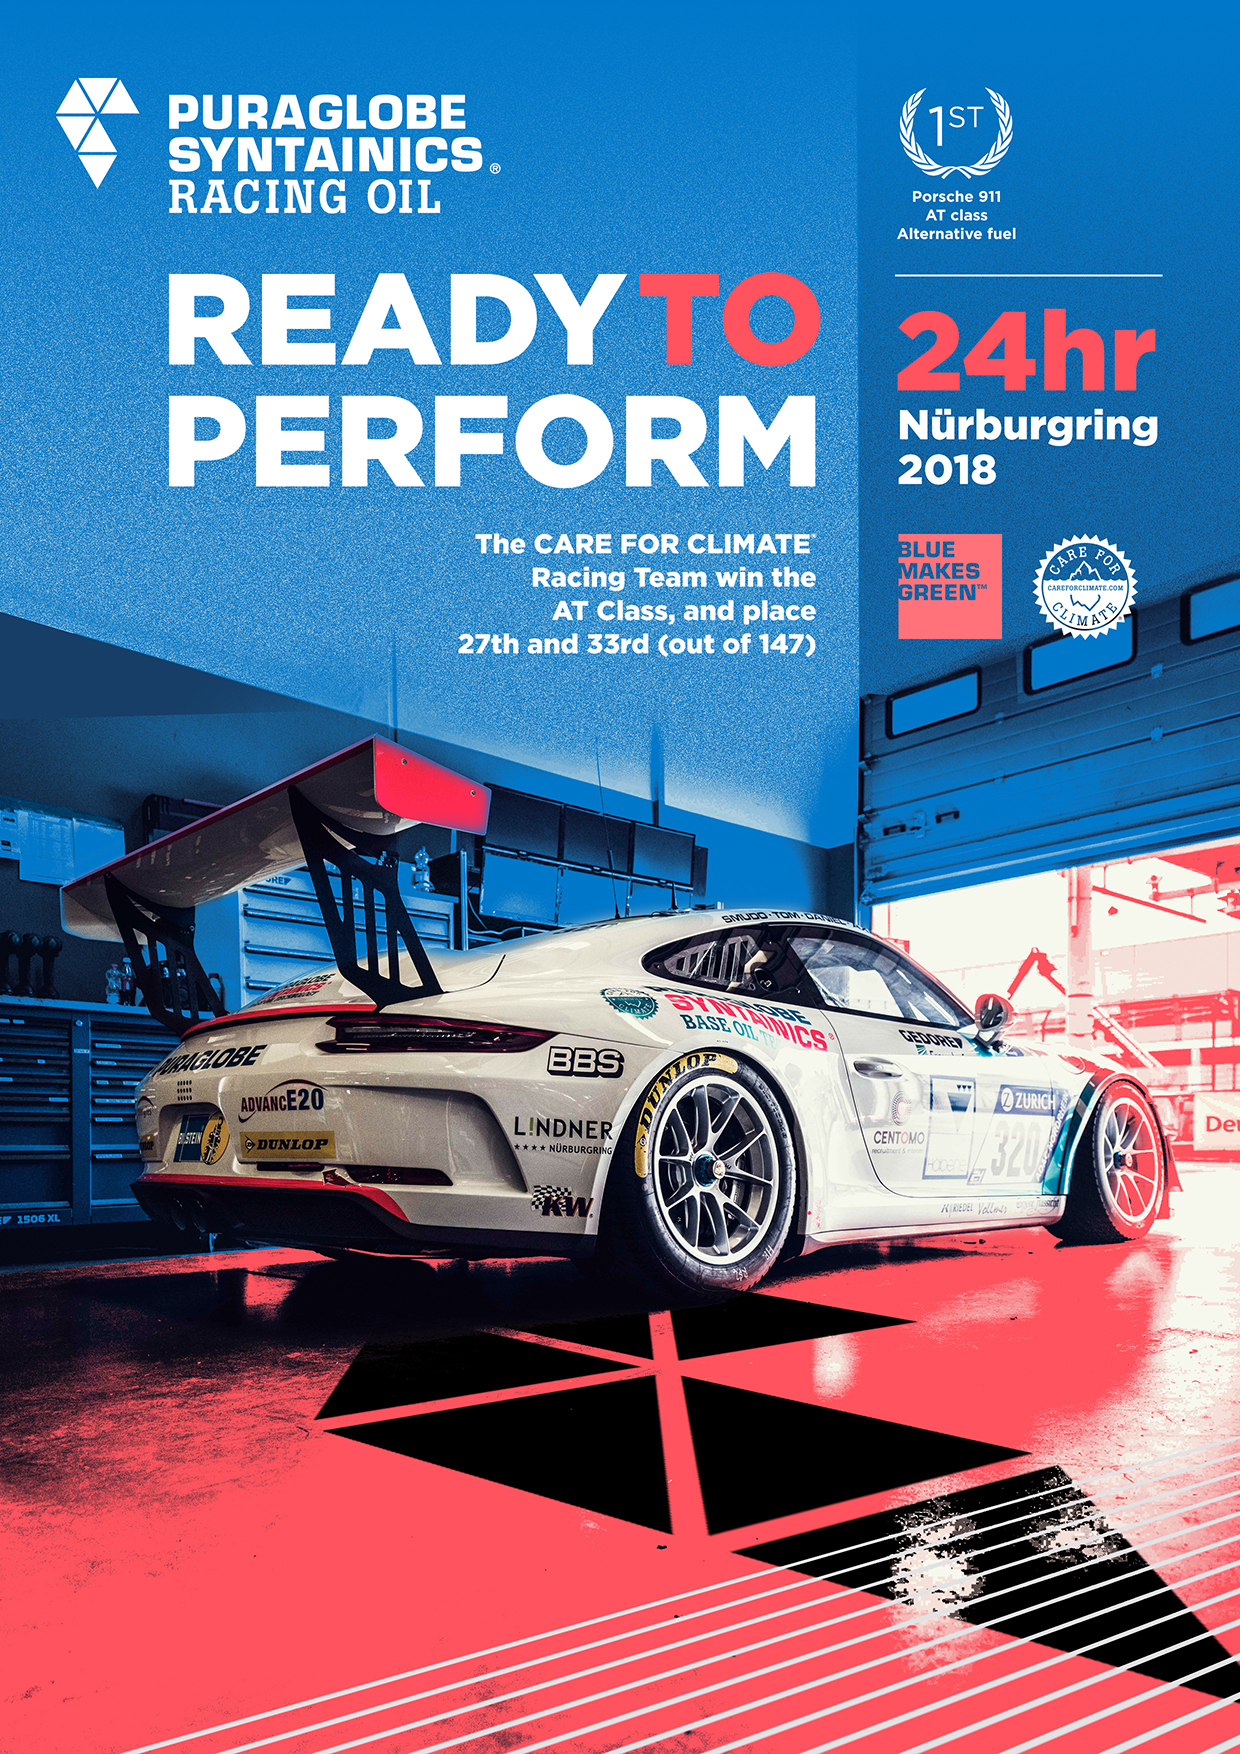 When we discovered the work of Robert Sheppard, we realized, he could be the right artist to do a celebration poster for the class victory of CARE FOR CLIMATE®'s Porsche 911 GT3 Cup.